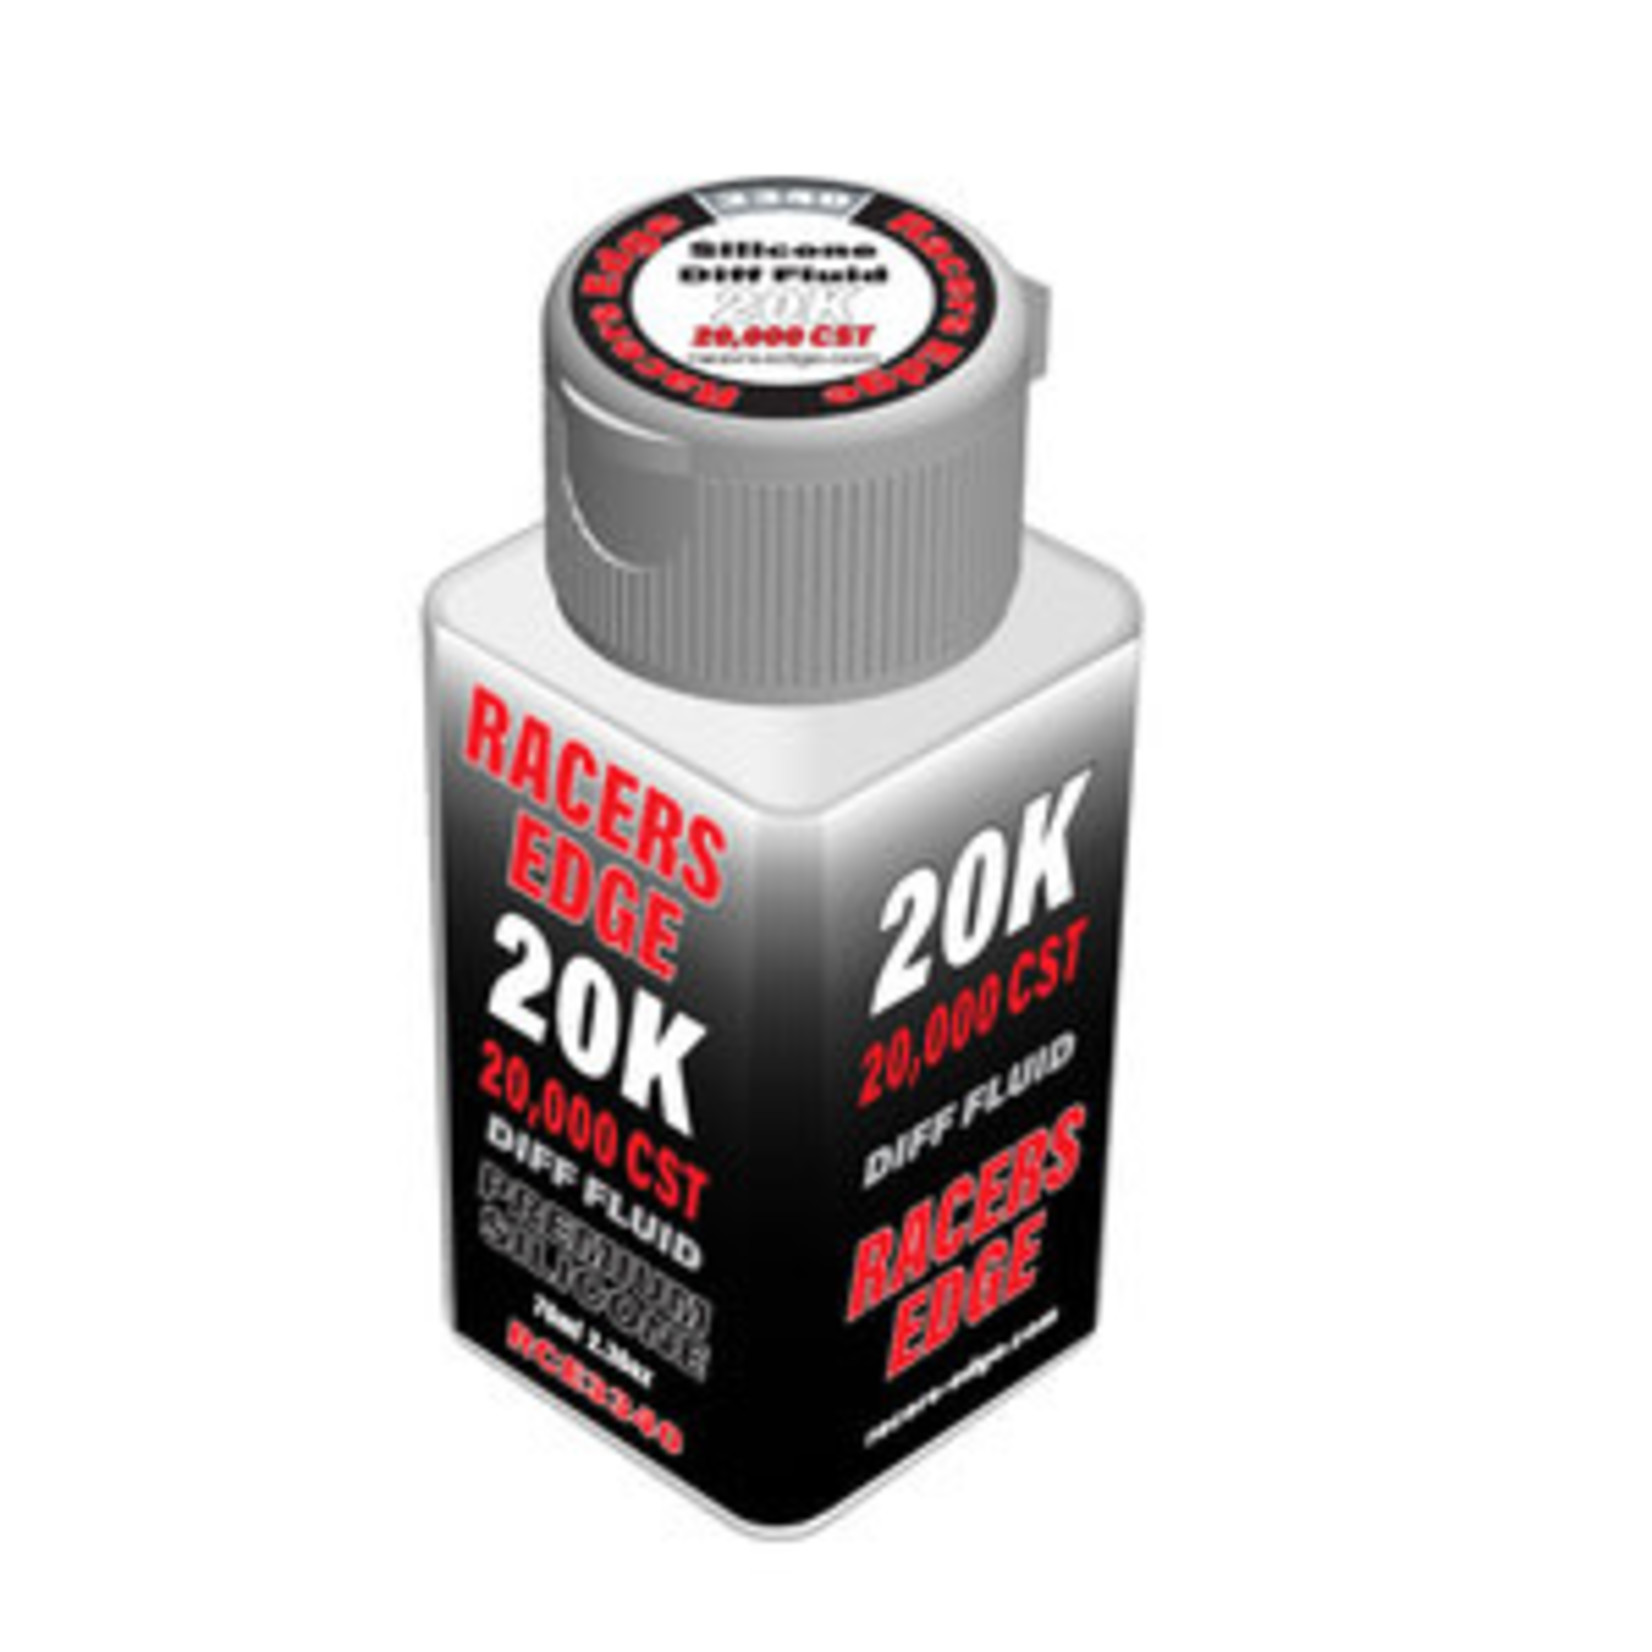 Racers Edge 20,000cSt 70ml 2.36oz Pure Silicone Diff Fluid